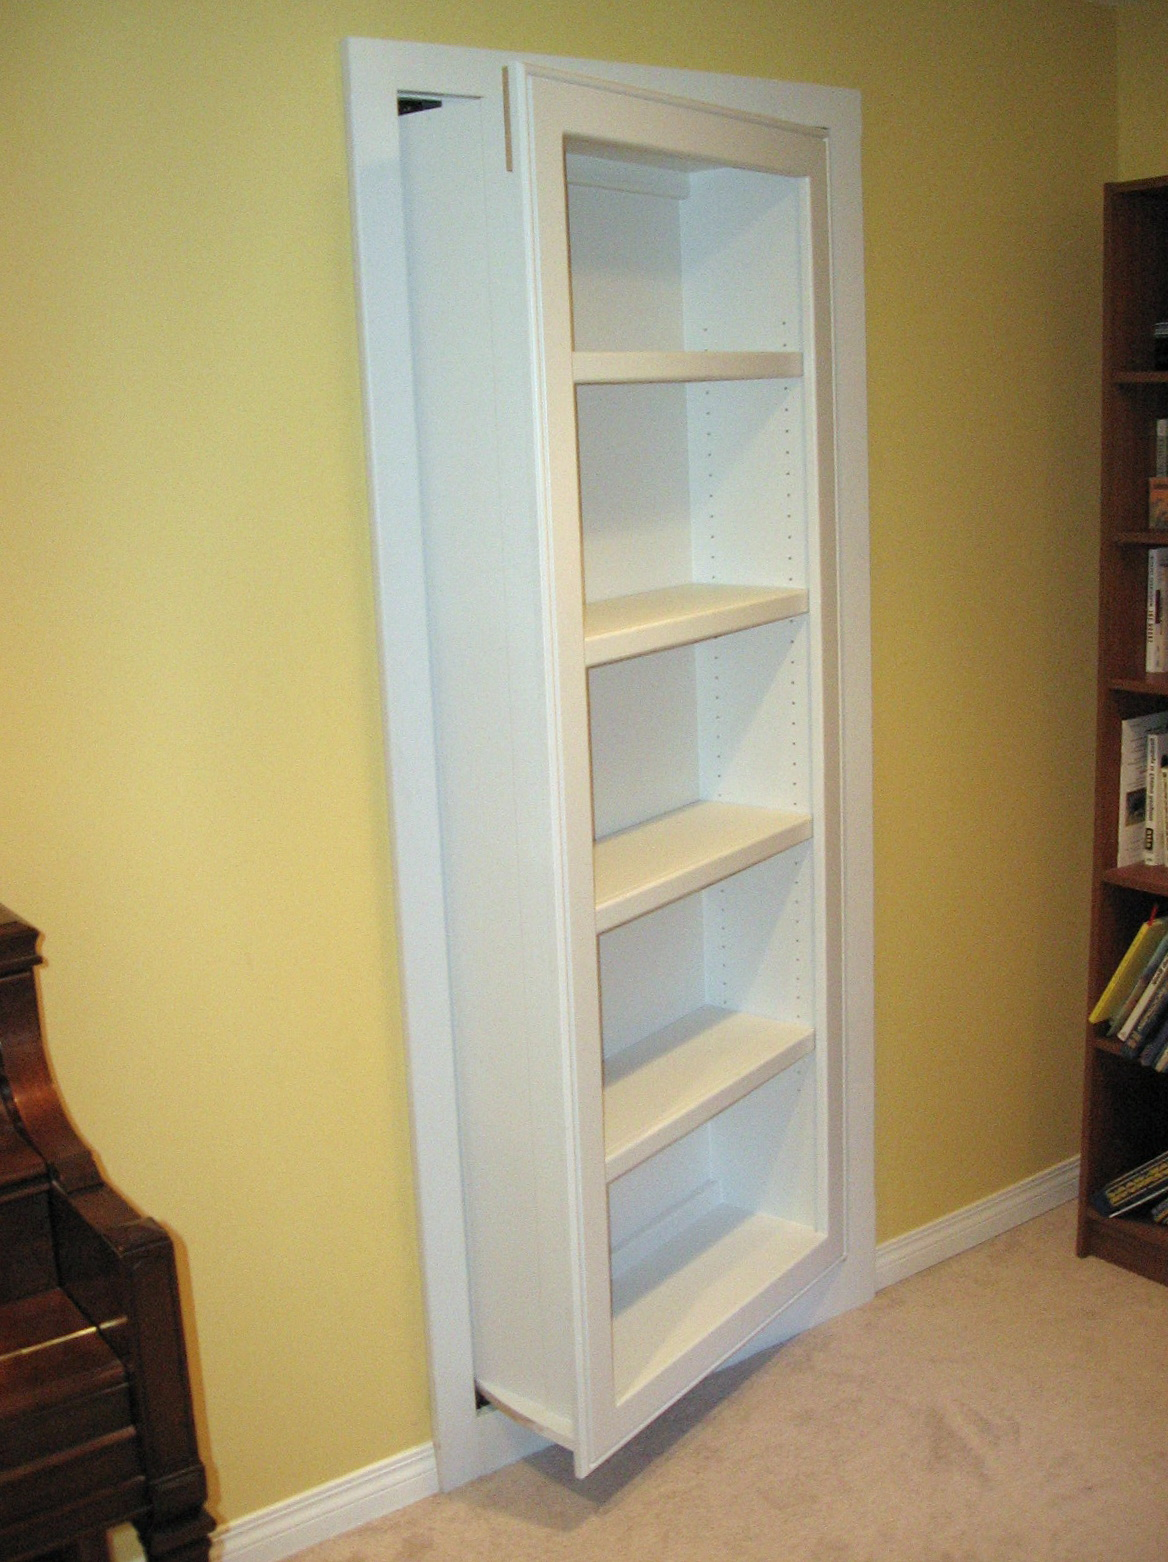 Secret Bookcase Door Latch Mechanism Home Design Ideas